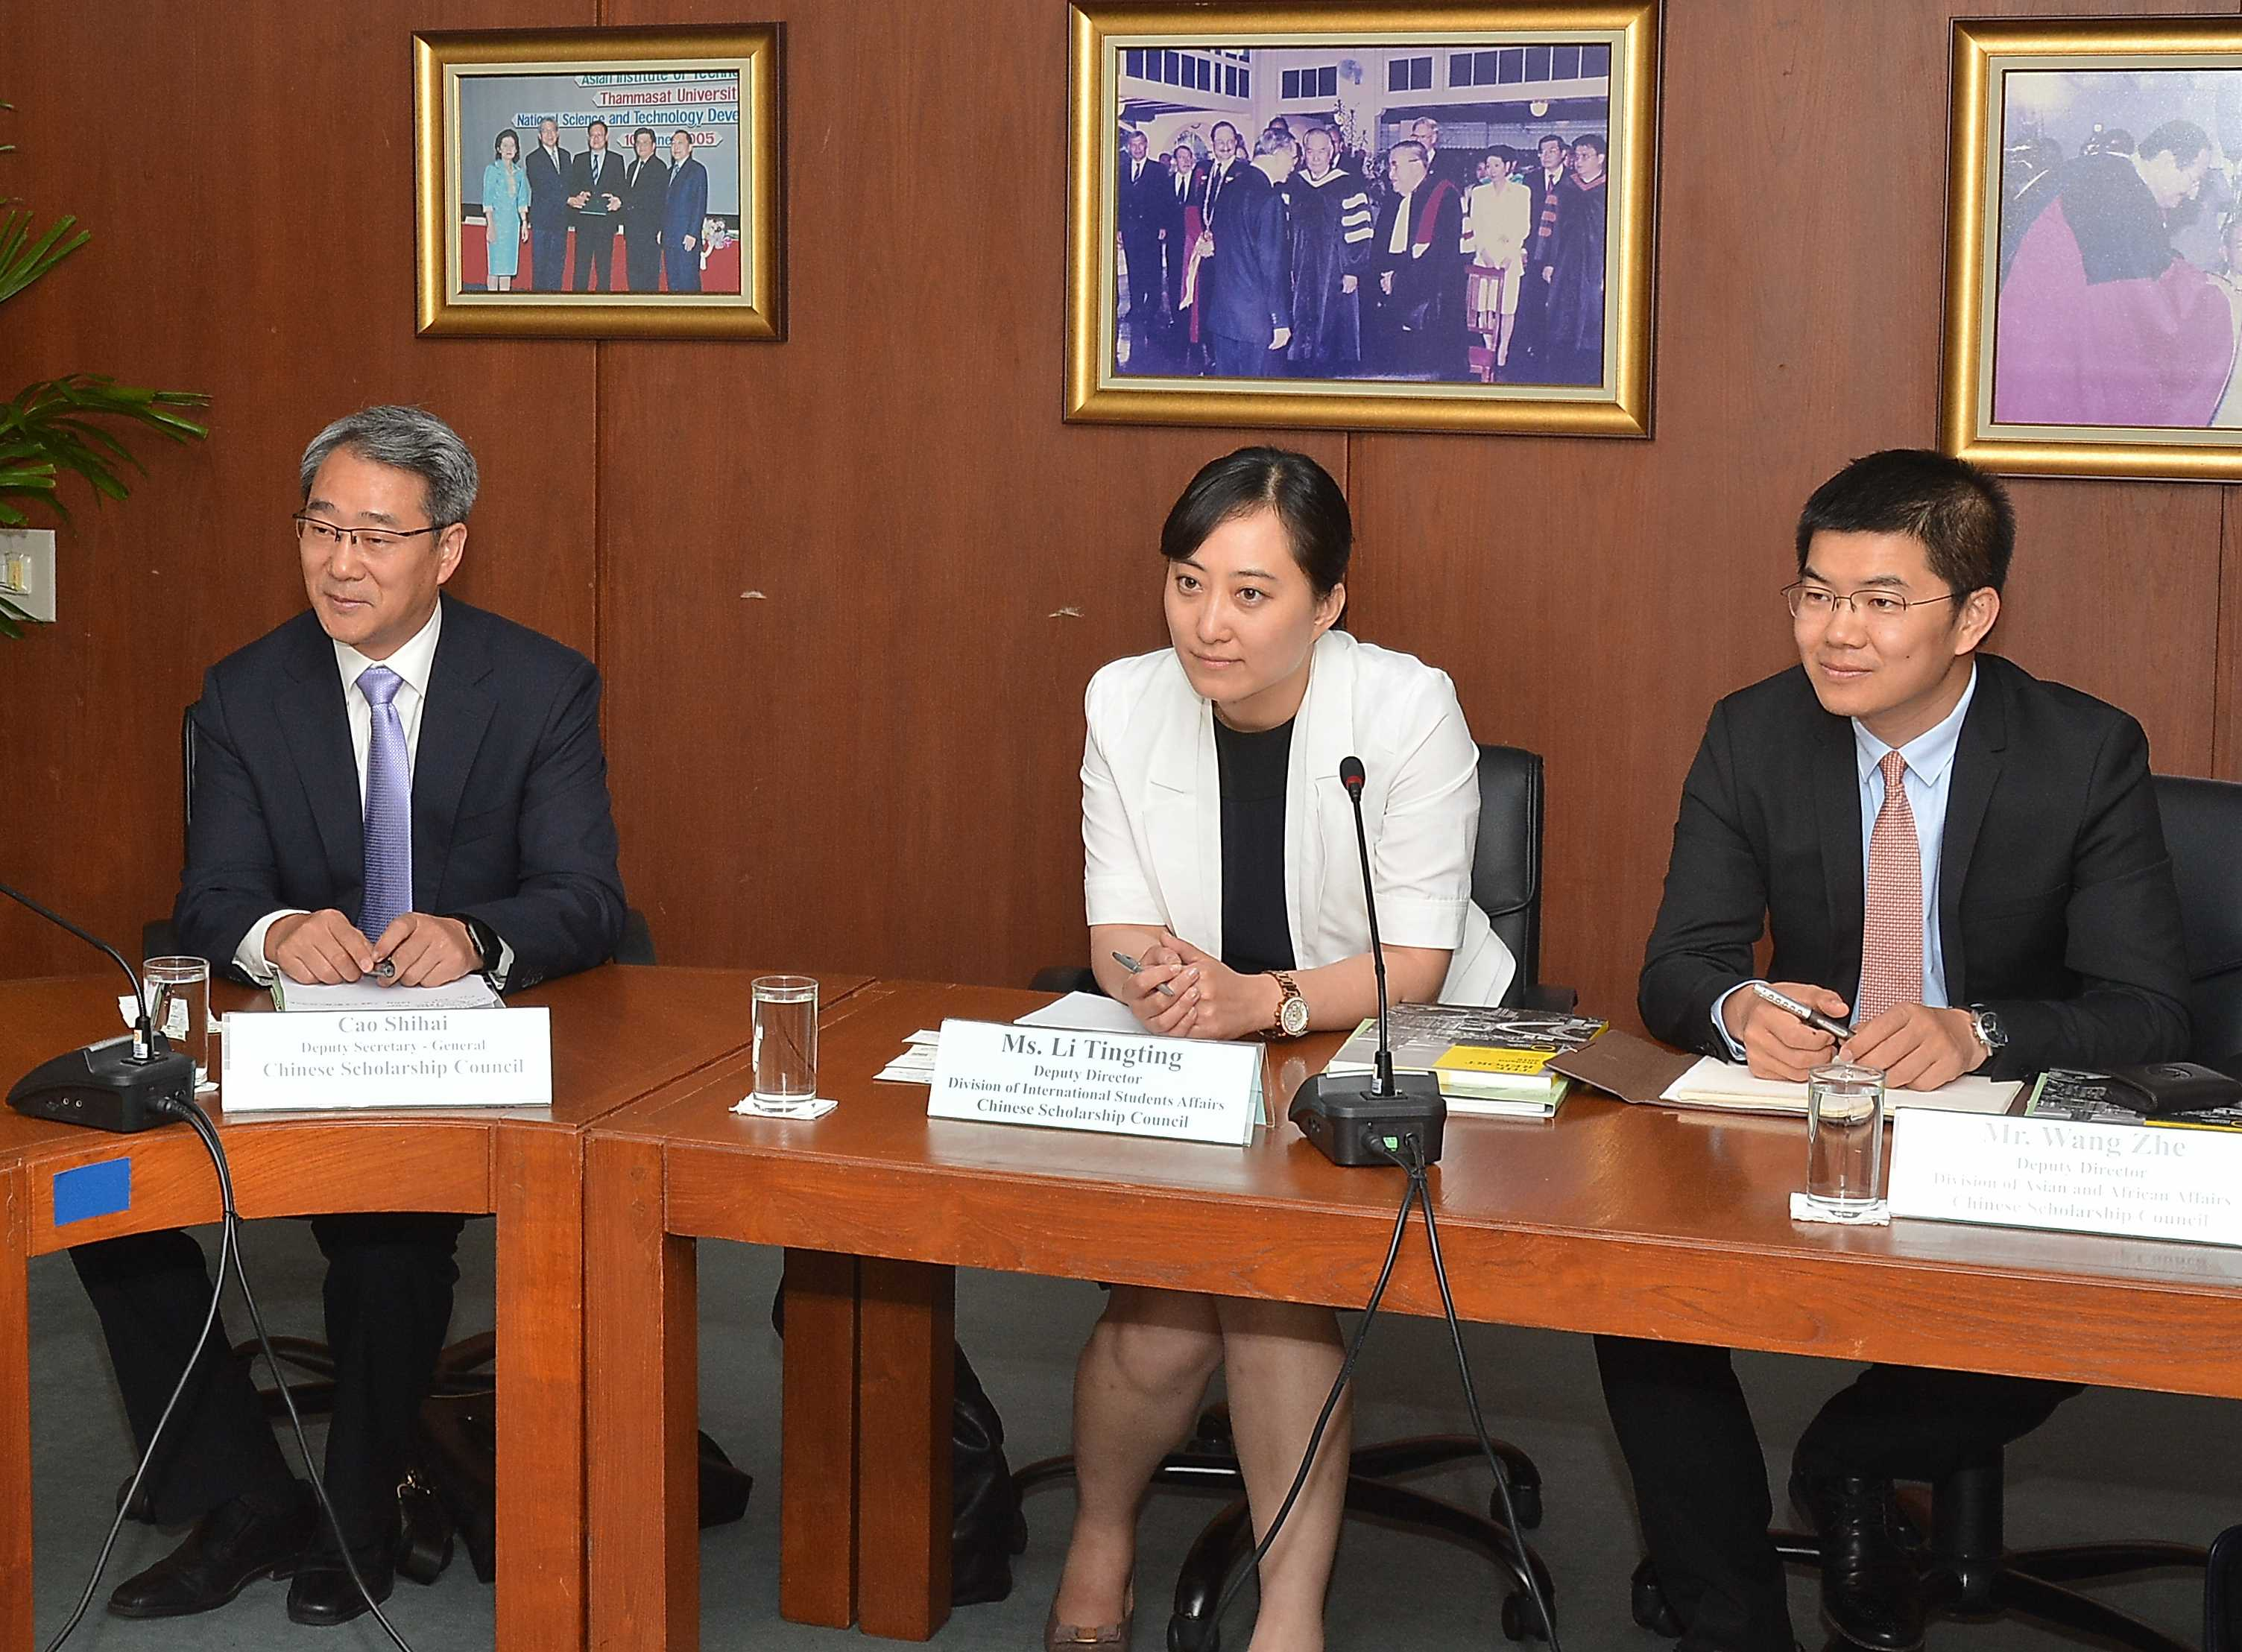 China Scholarship Council (CSC) eyes greater cooperation